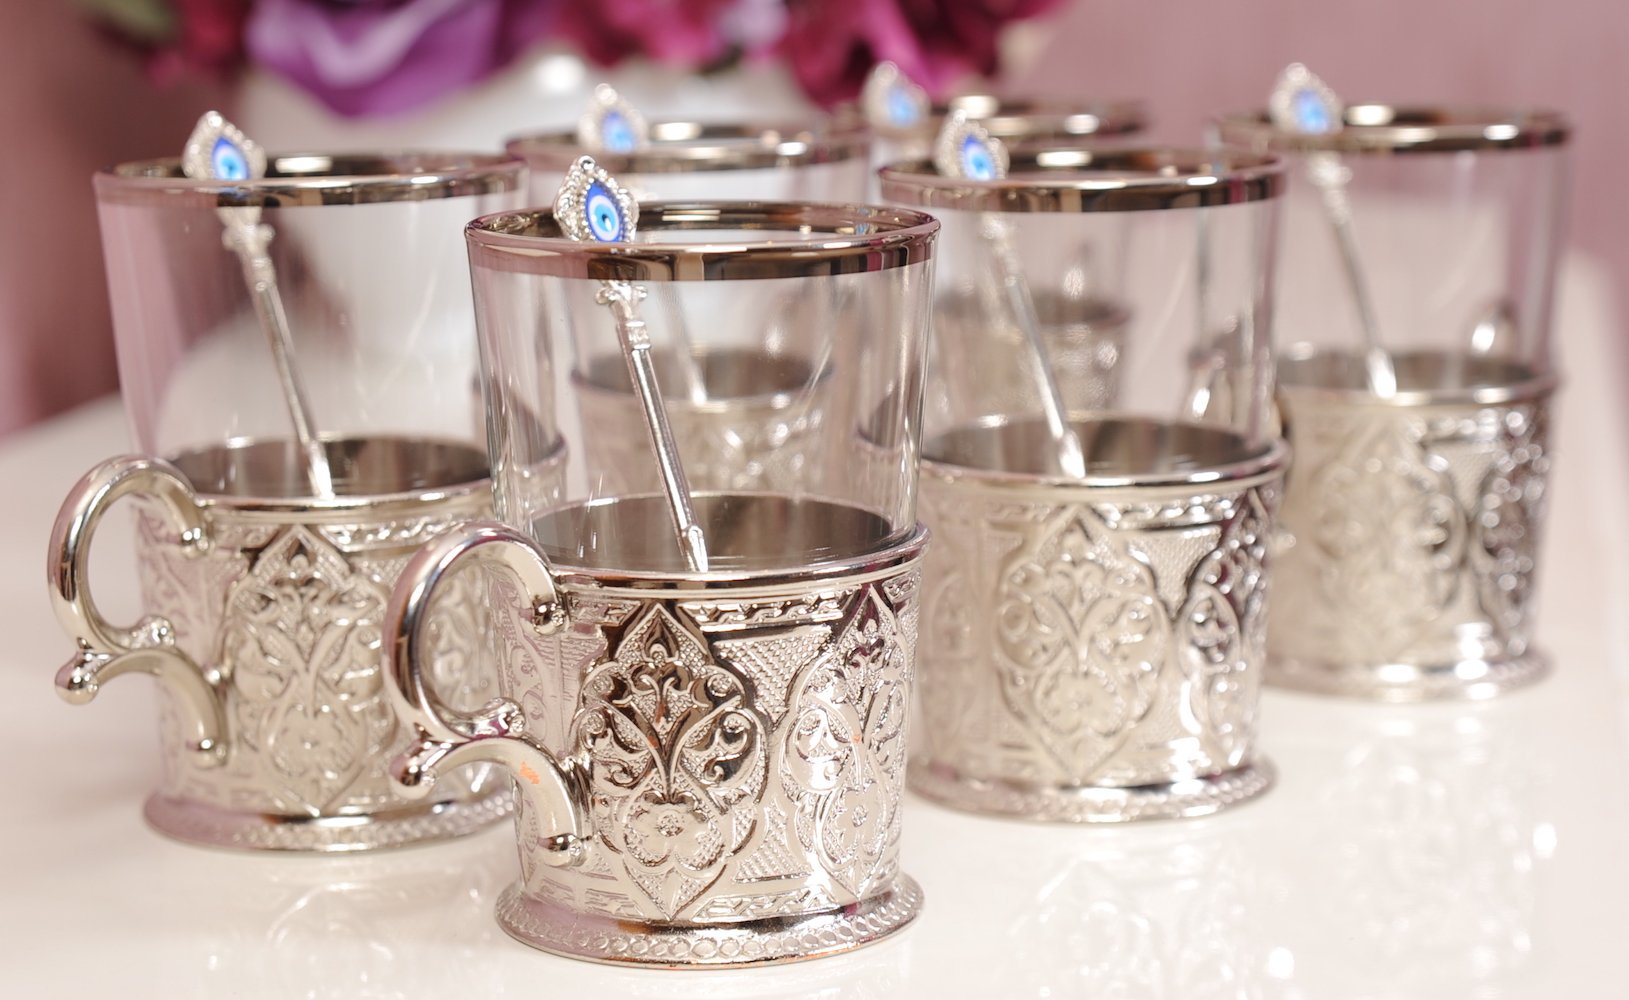 Demmex CopperBull 2018 Unique Decorated Tea Coffee Glasses Cups with Holders & Spoons, 200ml (Silver - Set of 6)